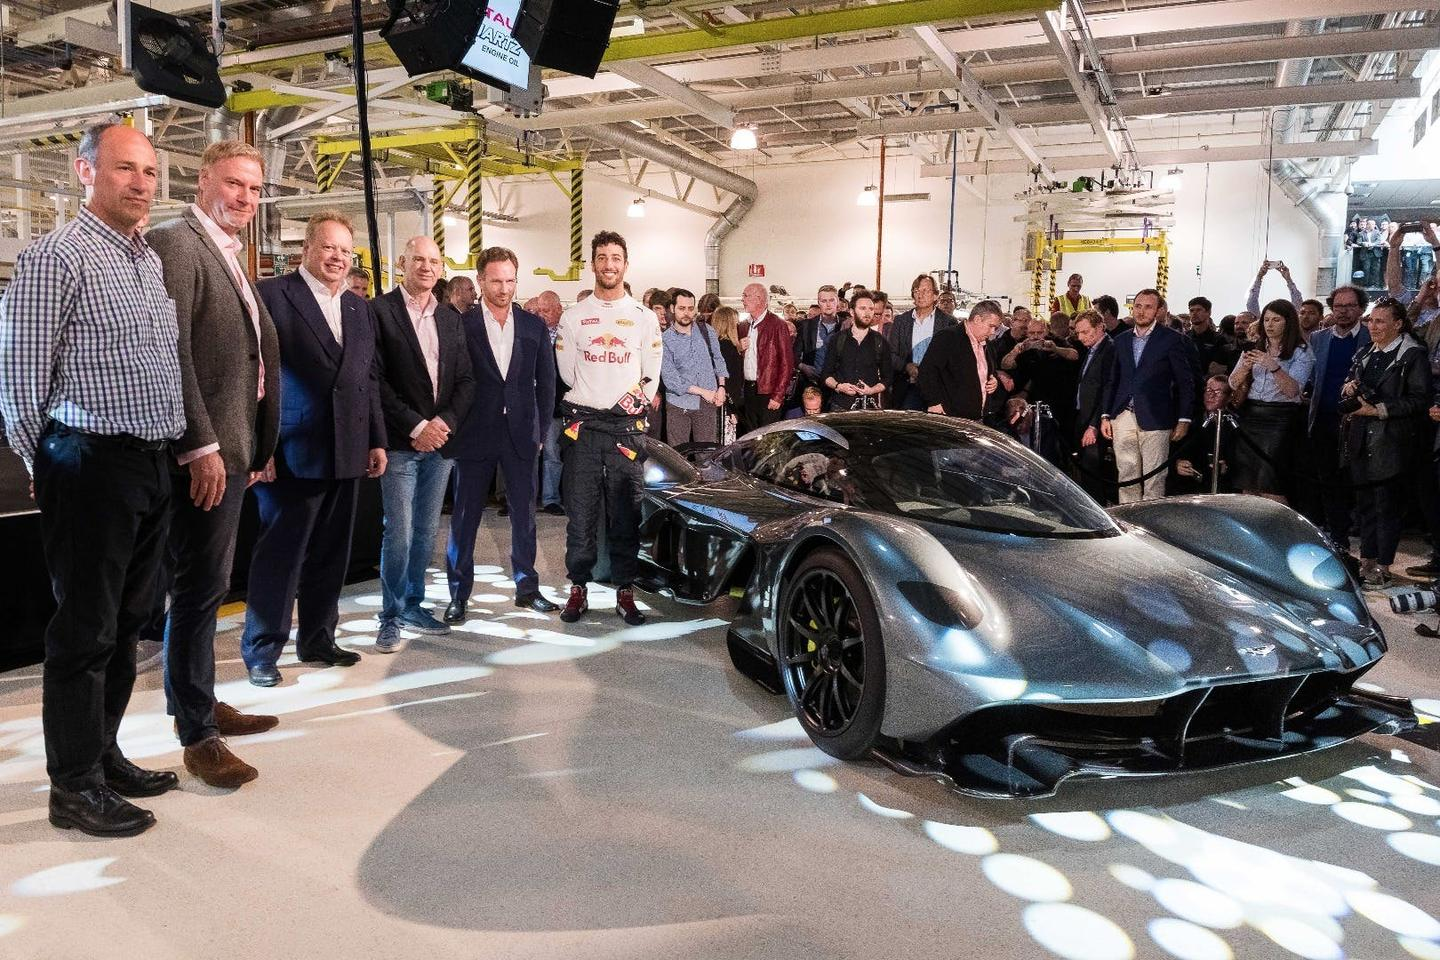 TheAM-RB001 at its styling reveal inLondon